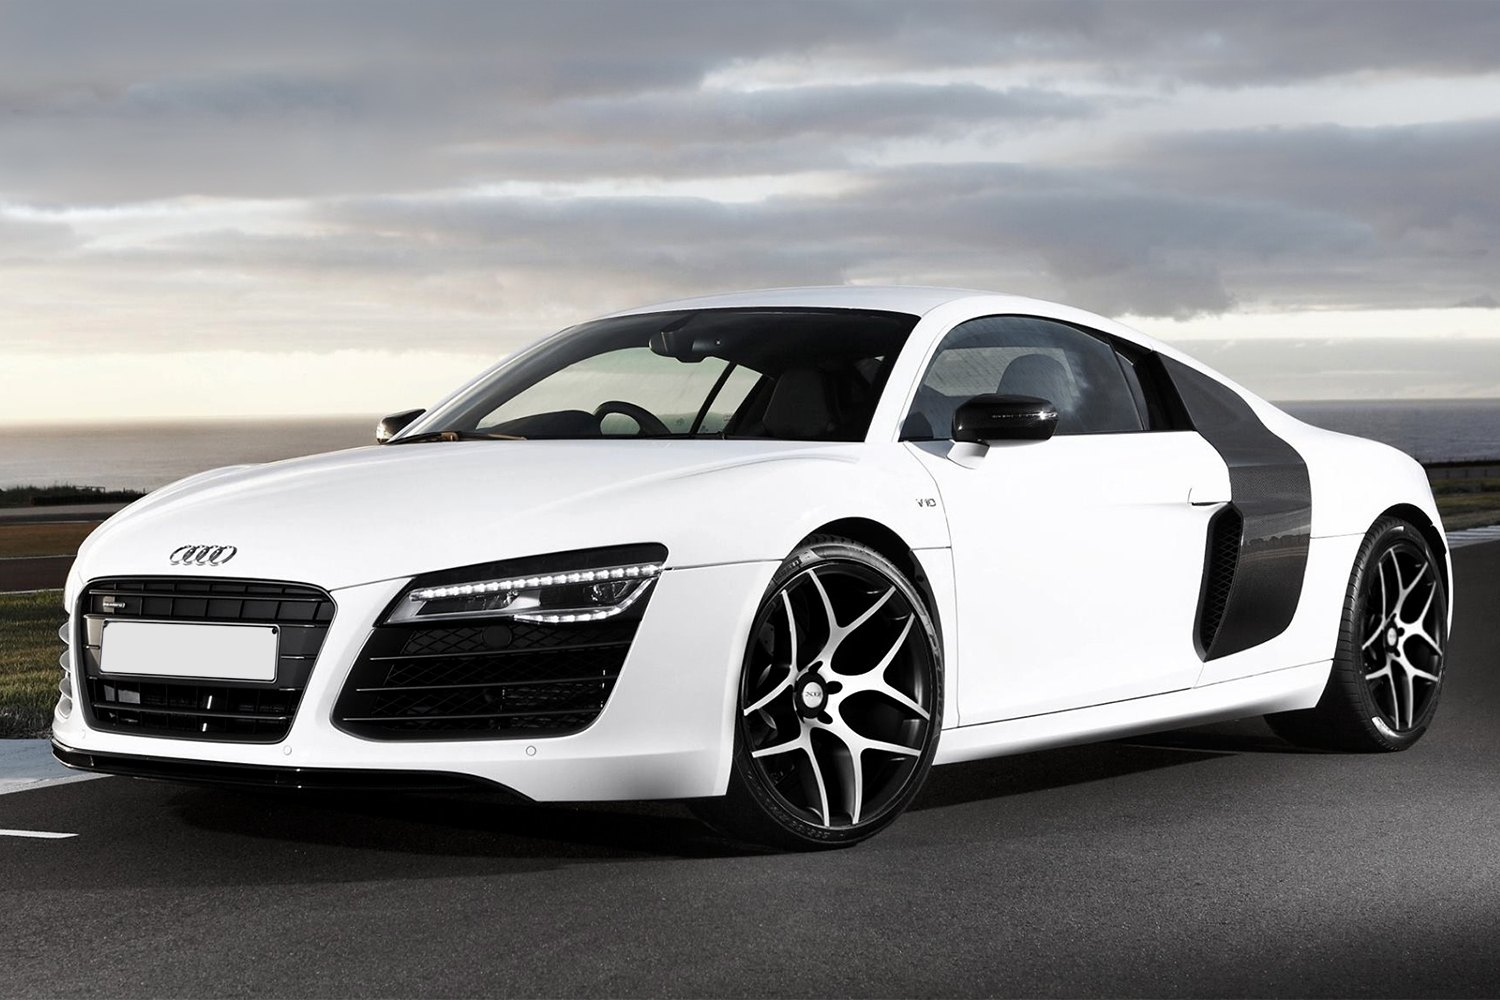 Audi r8 matte black photography images amp pictures becuo